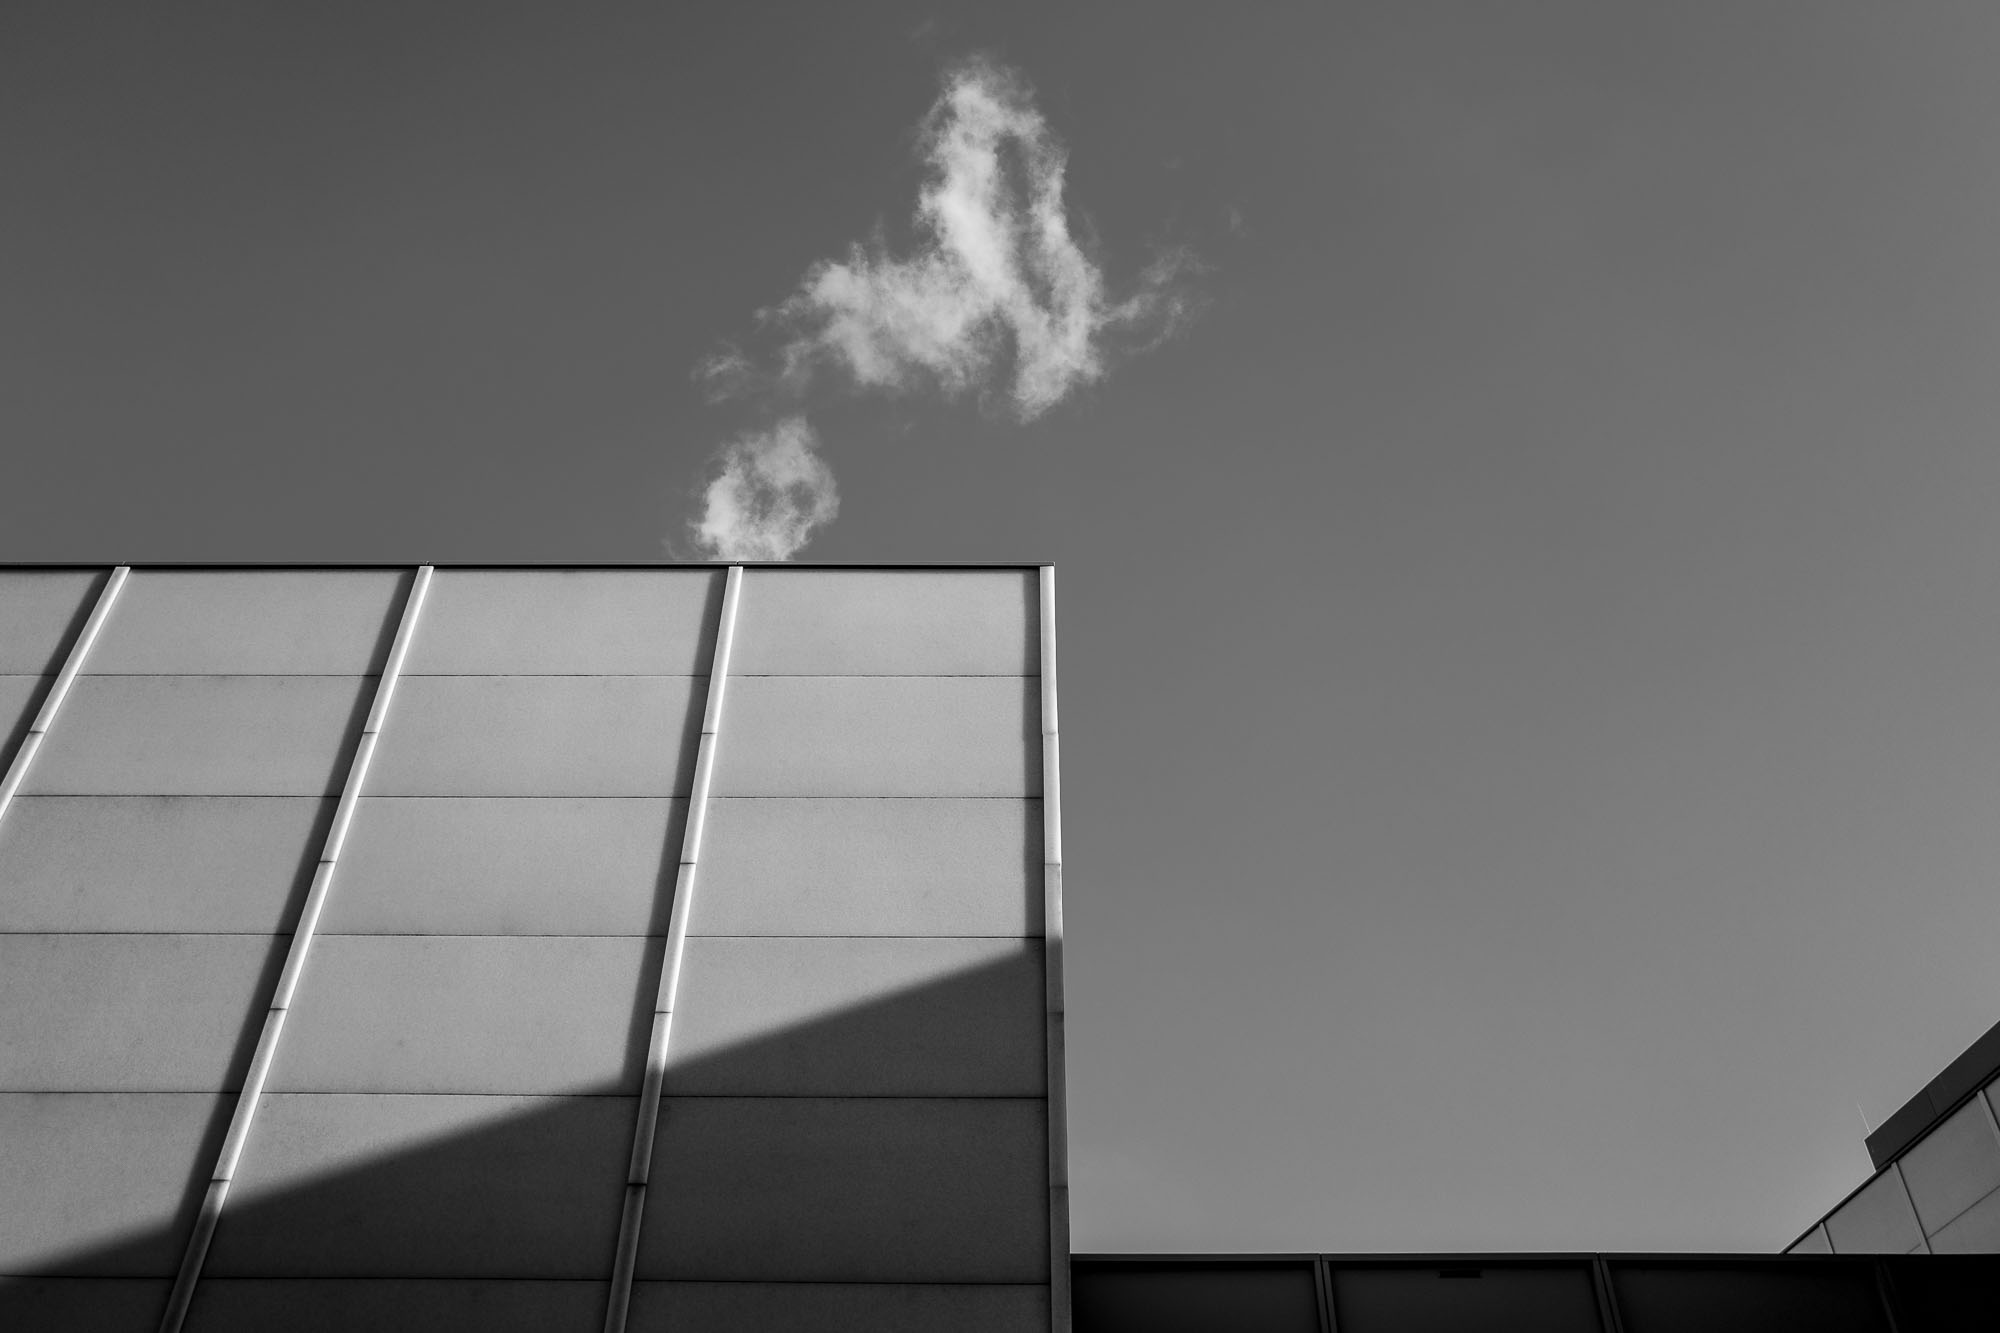 Rectangular building wall with a small cloud above it